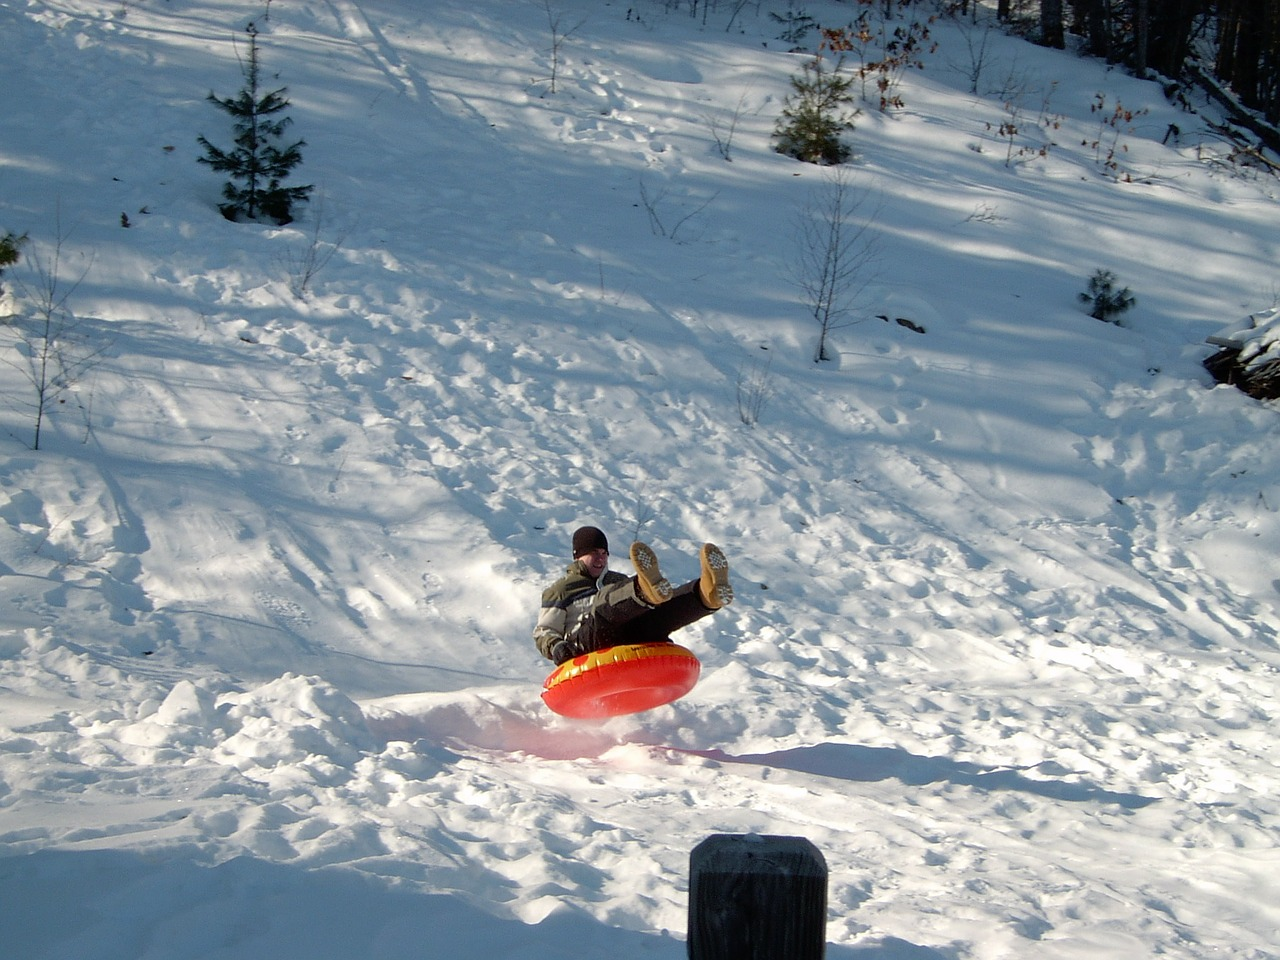 Man in a red inner tube going down the mountain.